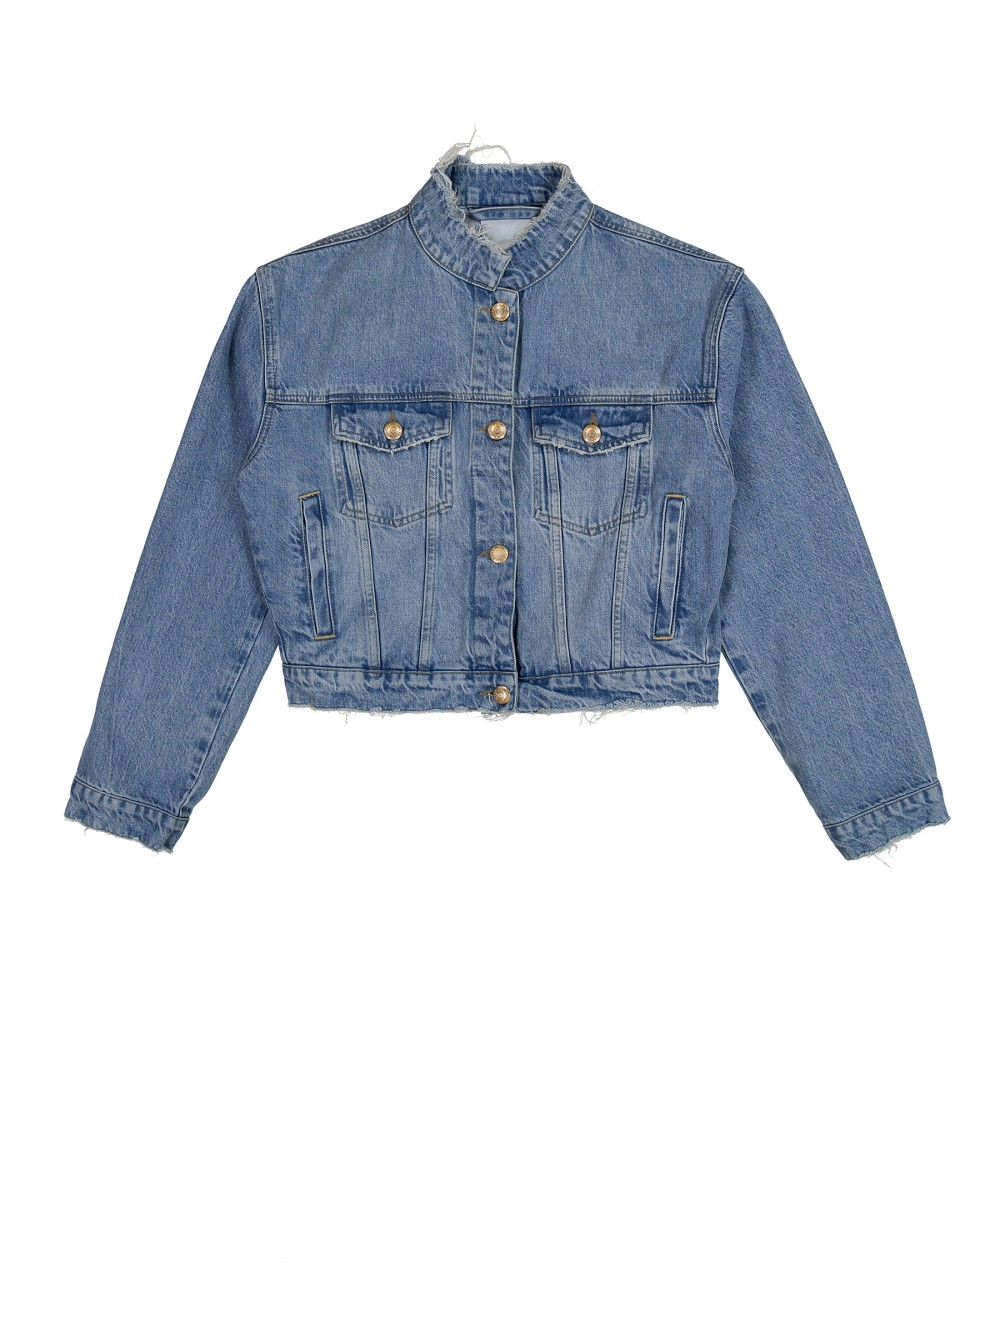 WON HUNDRED Cropped Denim Jacket -  $350